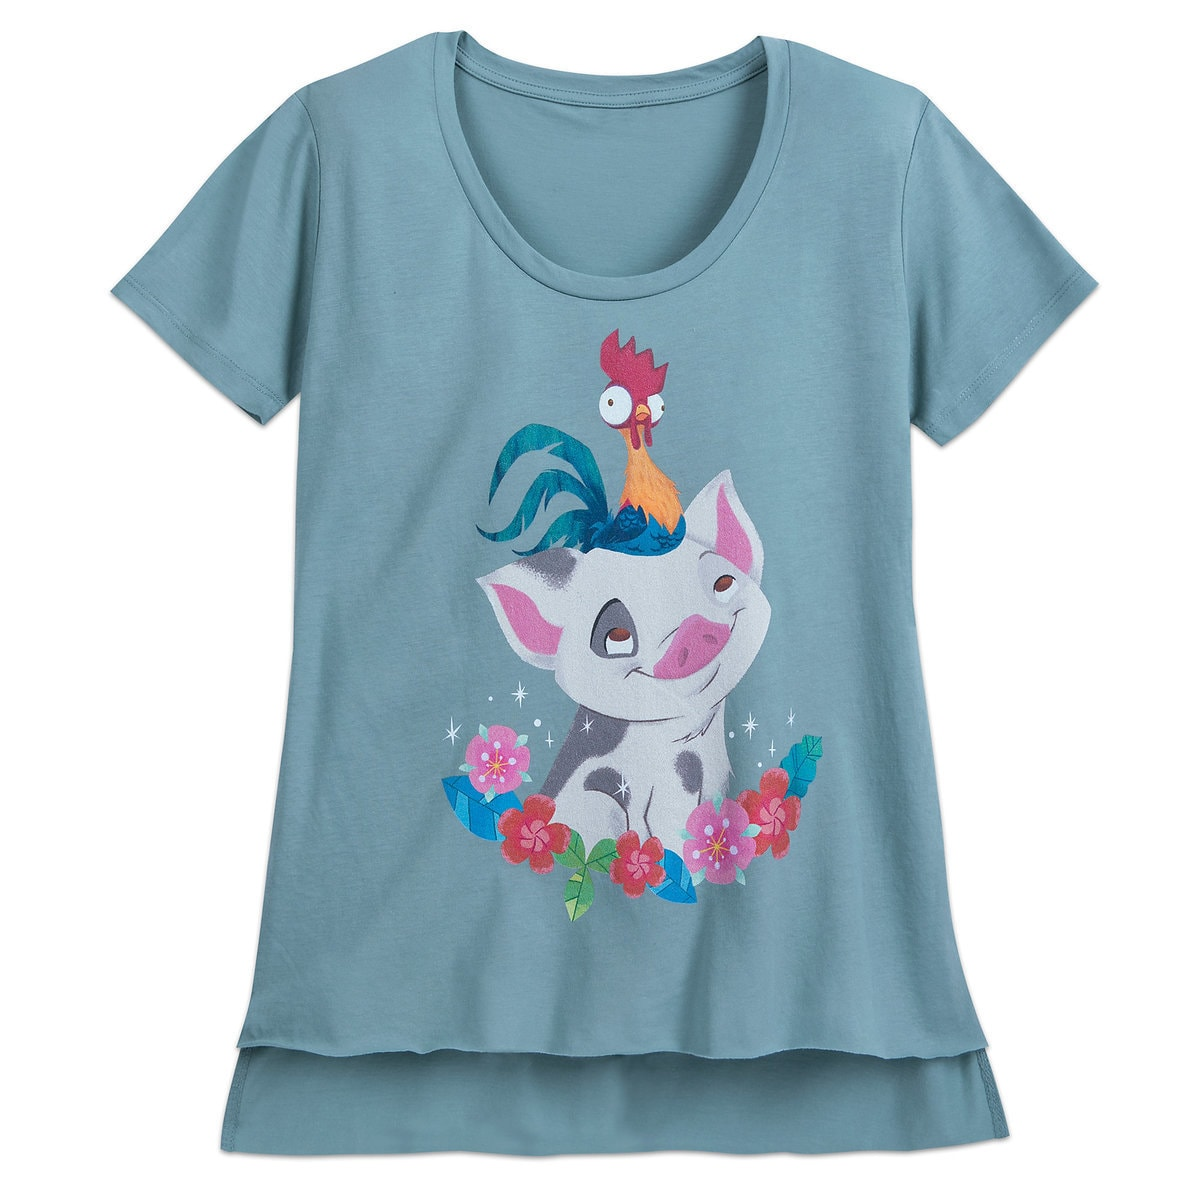 5bdba70cb Product Image of Pua and Hei Hei T-Shirt for Women - Moana # 1